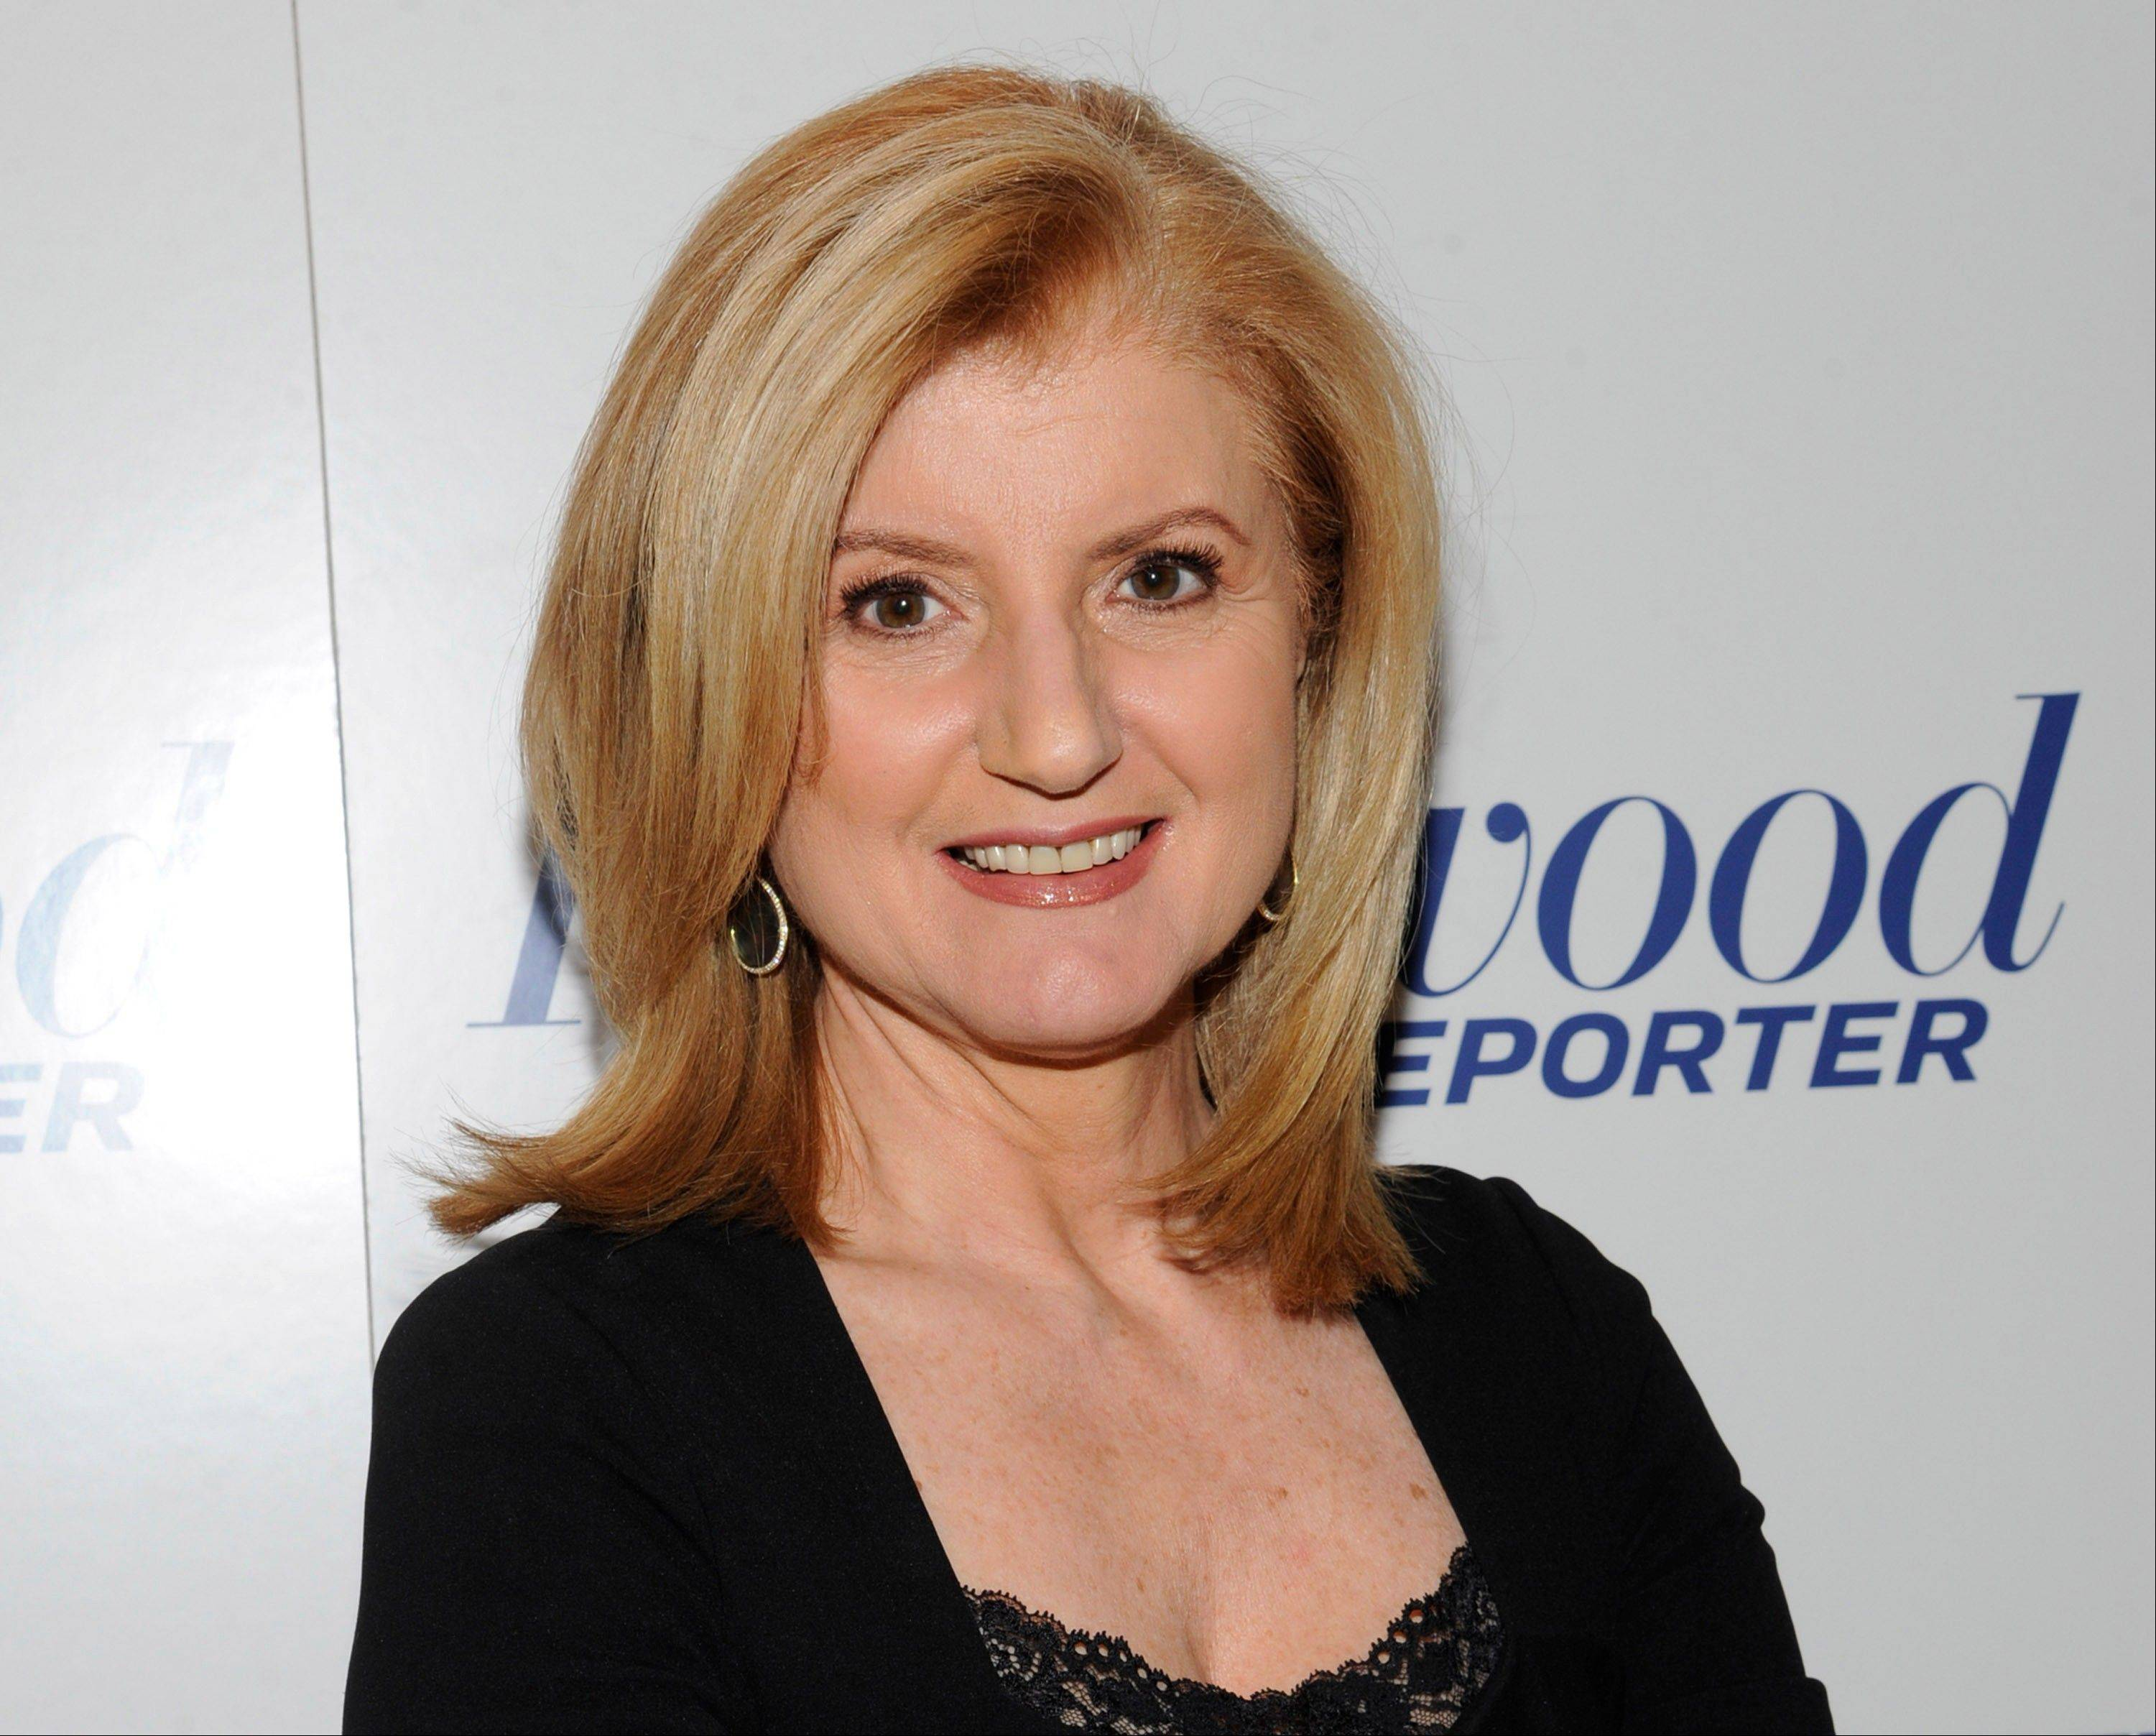 Arianna Huffington, seen here, and Oprah Winfrey launched �HuffPost OWN,� a new section on the Huffington Post website Thursday.